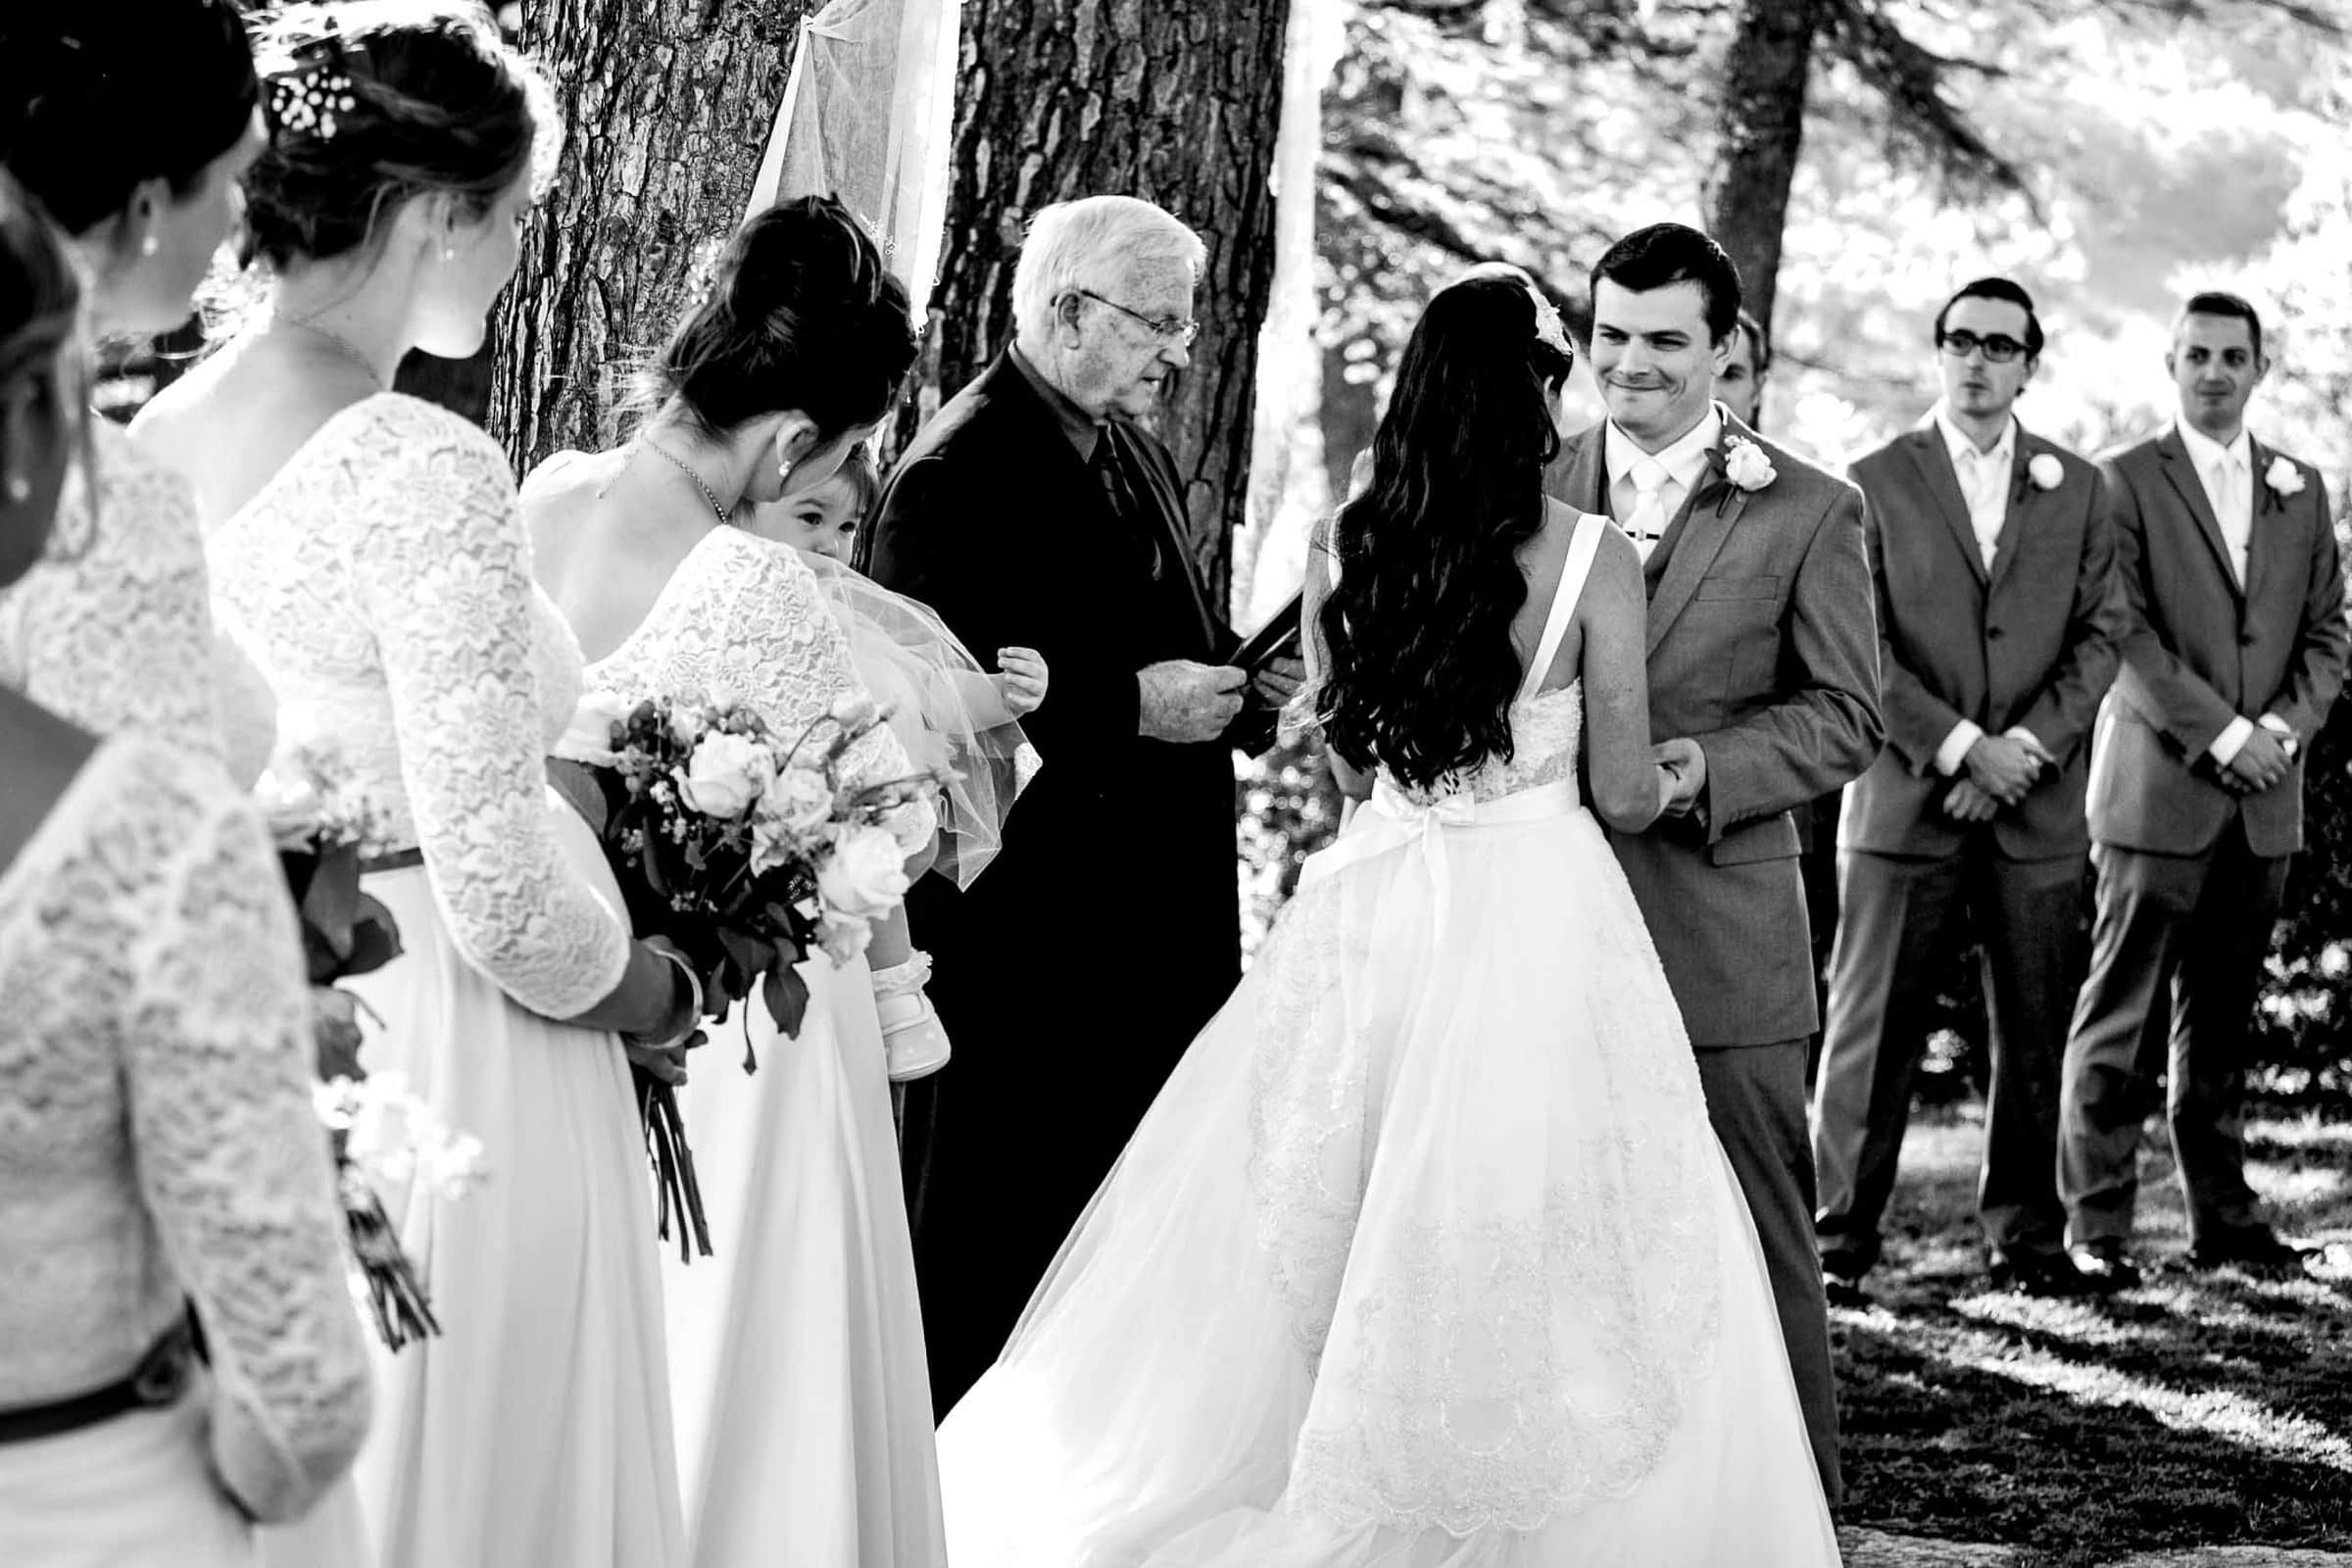 Black and white photo of a bride and groom exchanging vows during their Villa Tre Grazie wedding ceremony near Todi, Italy in Umbria.